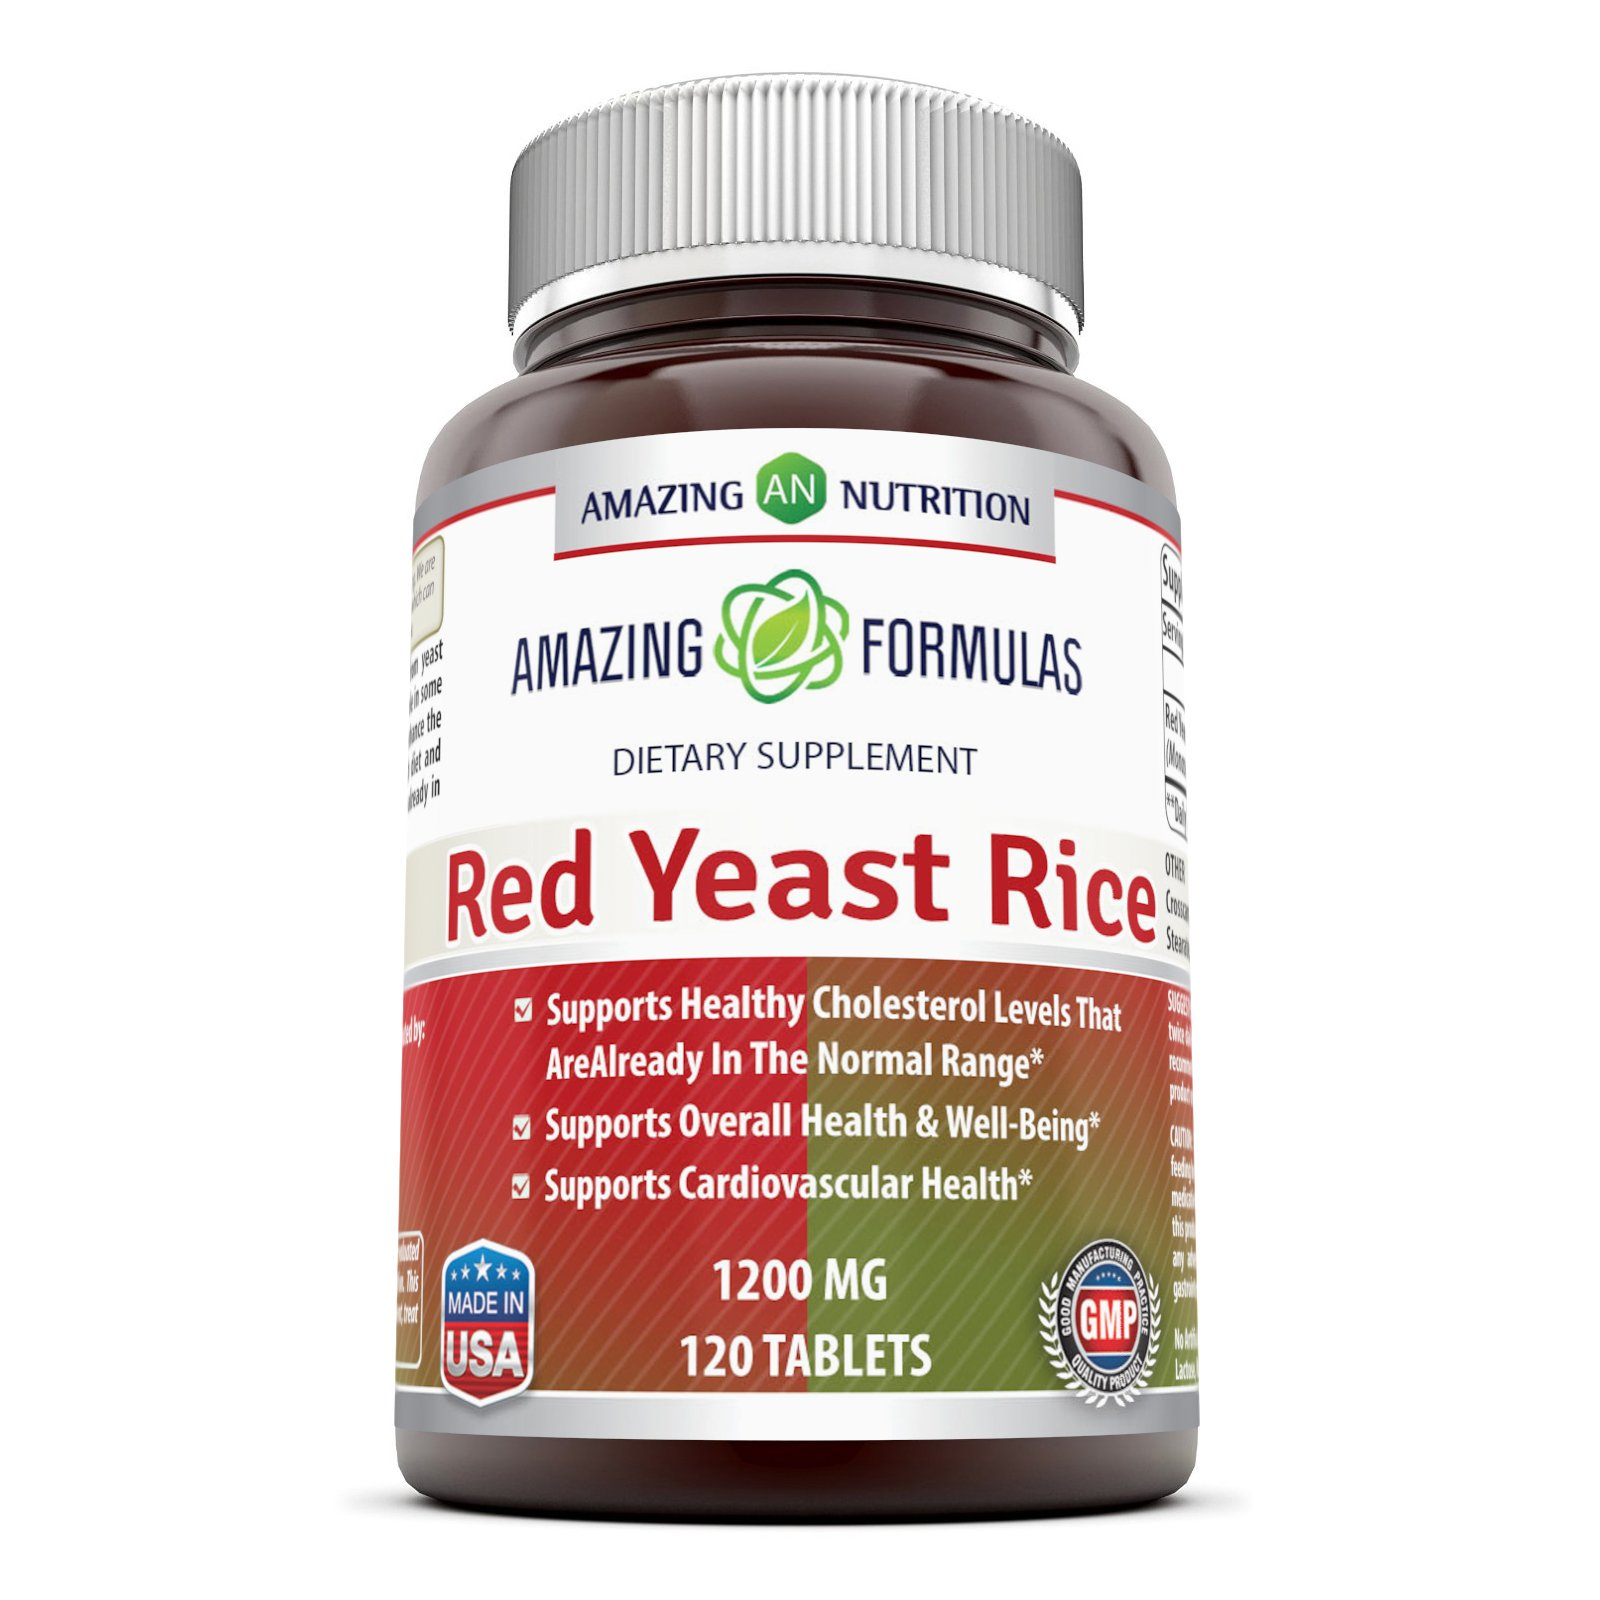 Amazing Formulas Red Yeast Rice Dietary Supplement -1200mgof Best Quality Red Yeast Rice PowderPerServing–Supports Cardiovascular Health- 120Tablets(Non-GMO) Per Bottle